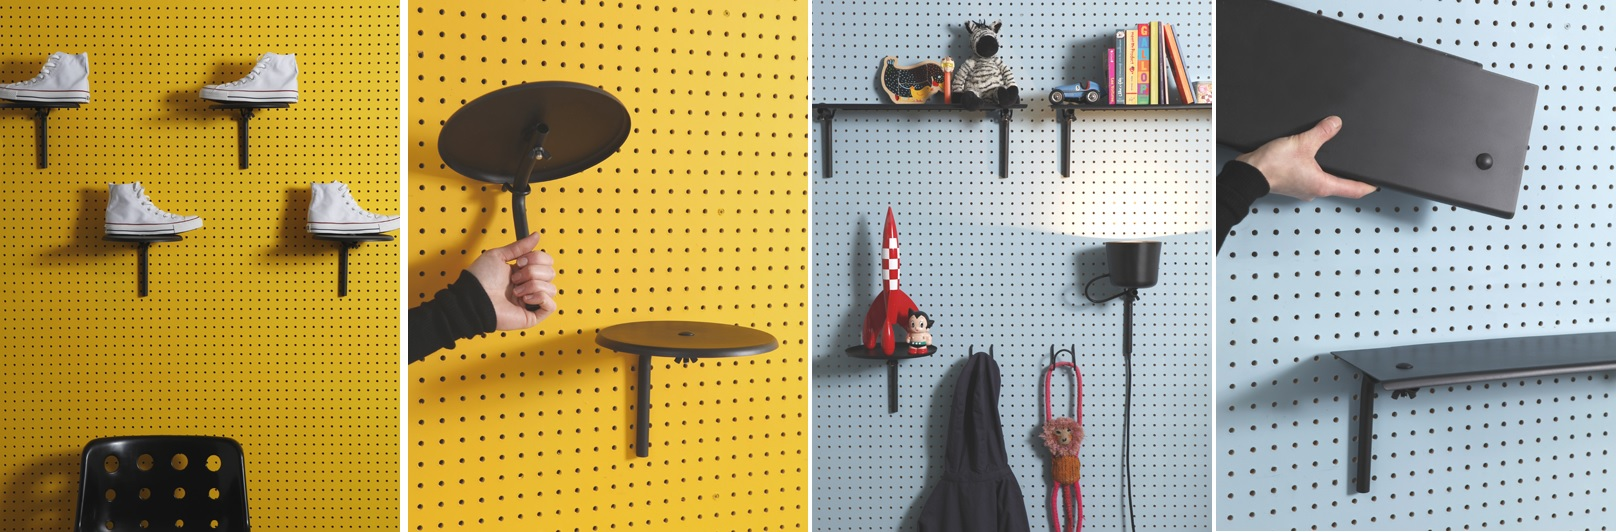 42-pegboards